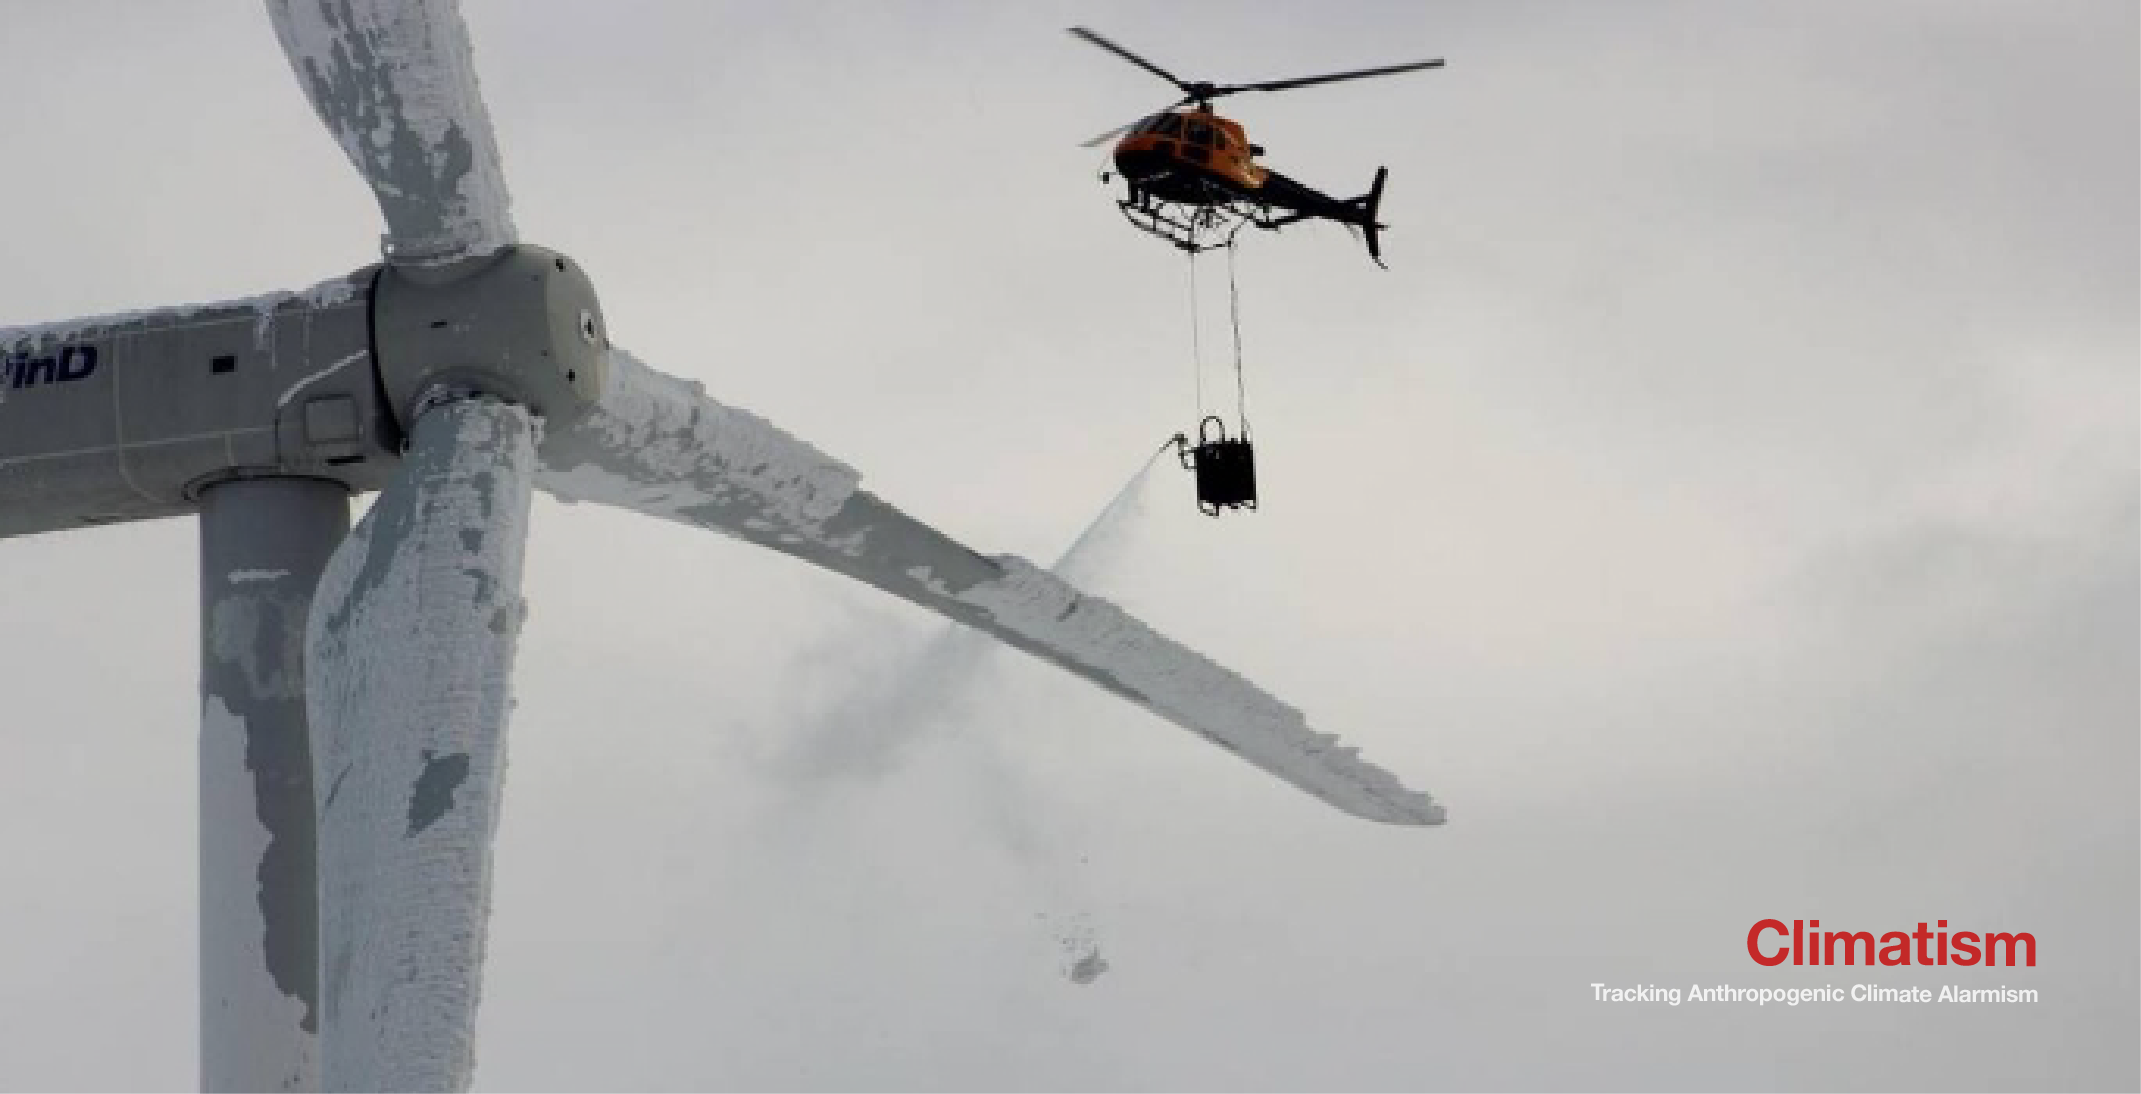 green jobs - helicopter de-icing - climatism